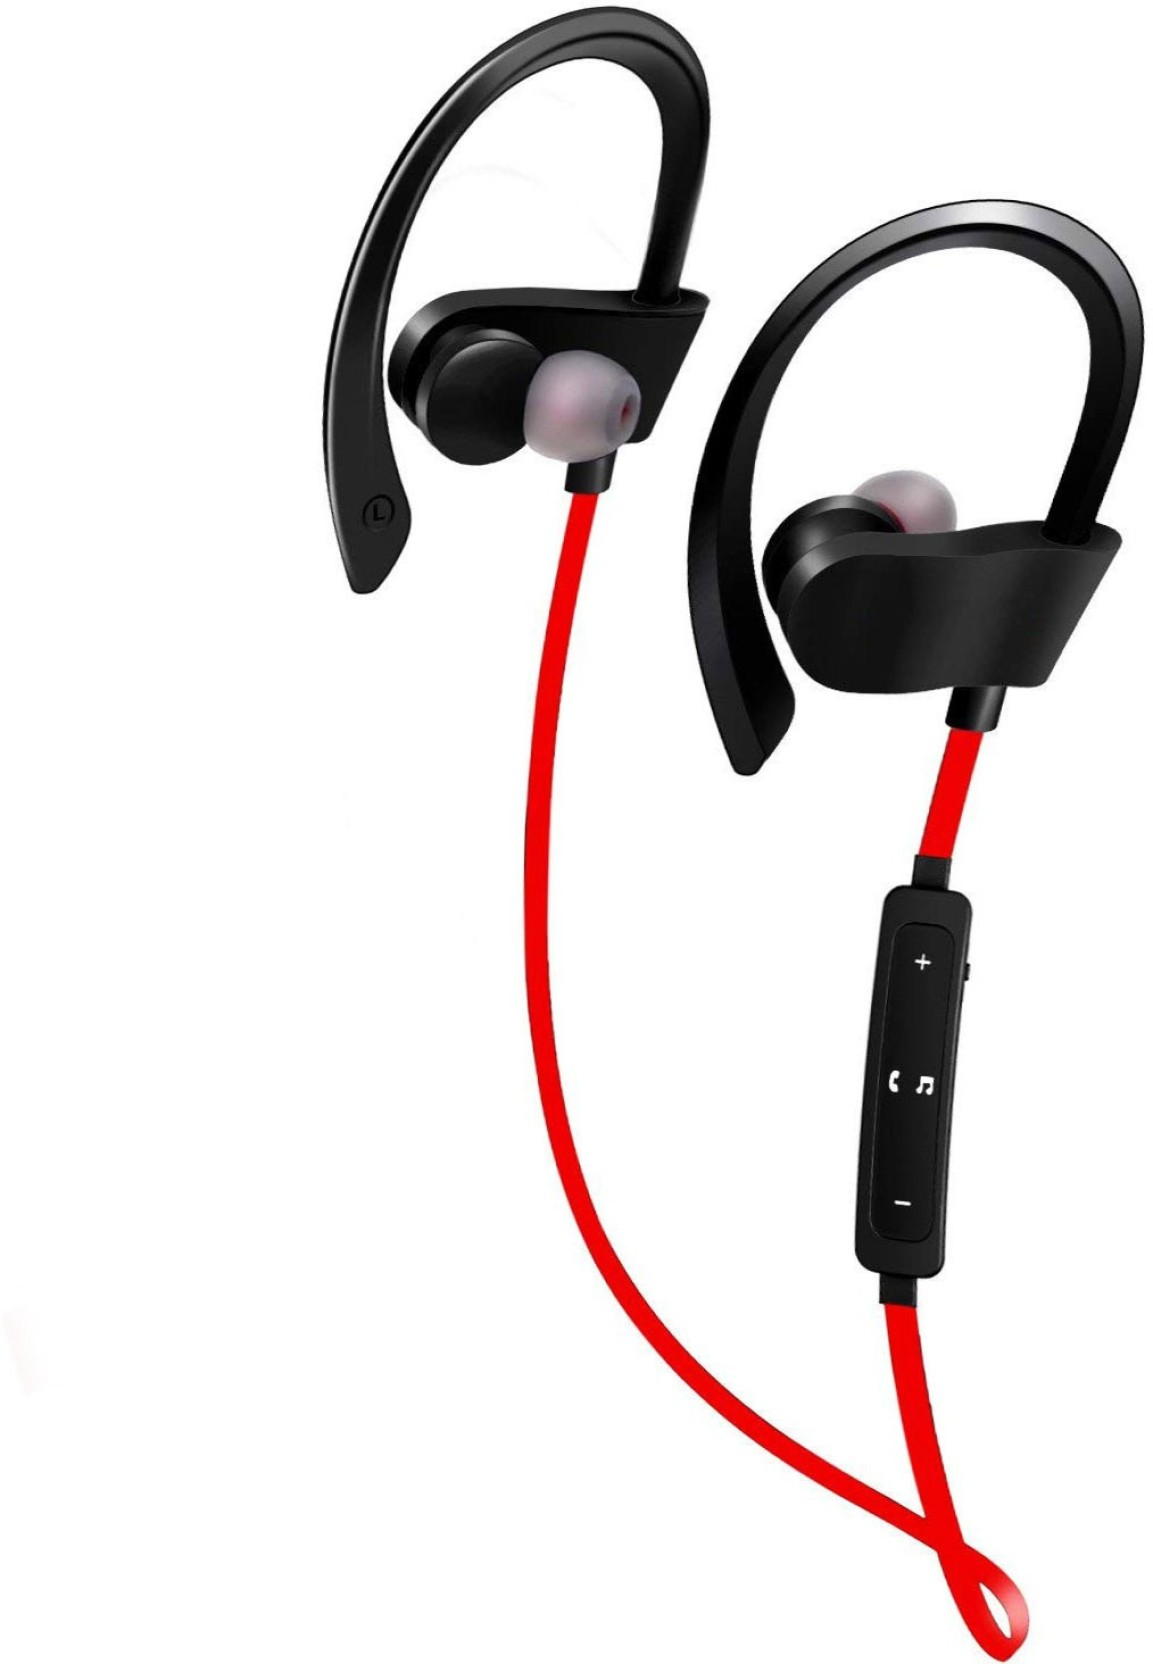 IS-QC10x NeckBand Wireless in the ear Behind the Neck - Red